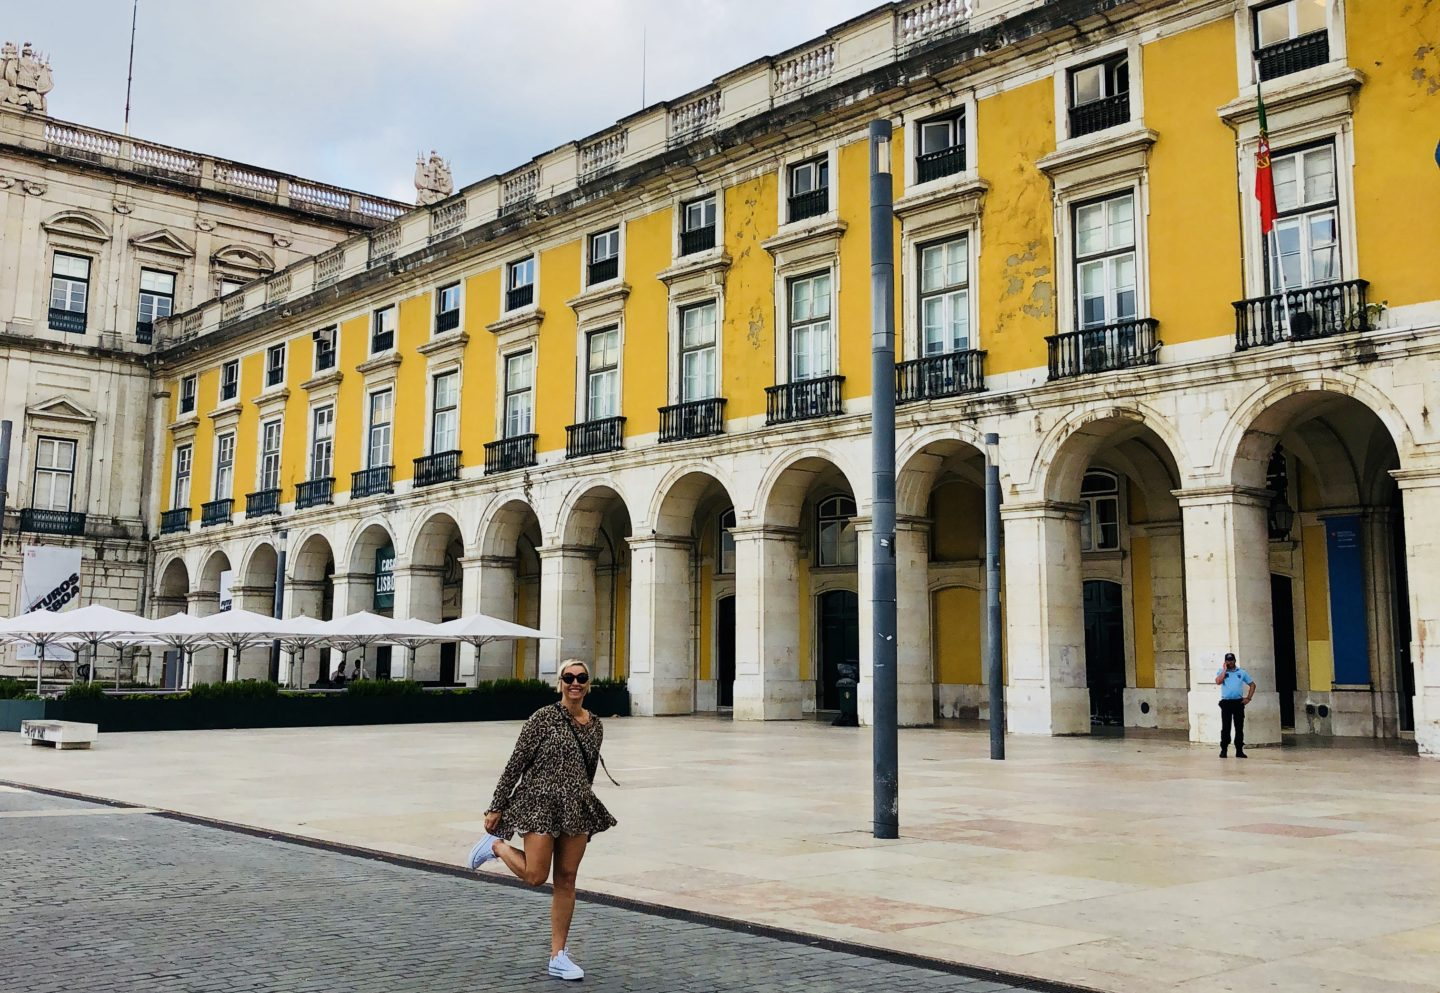 Portugal Pt. 1: What to Do in Lisbon